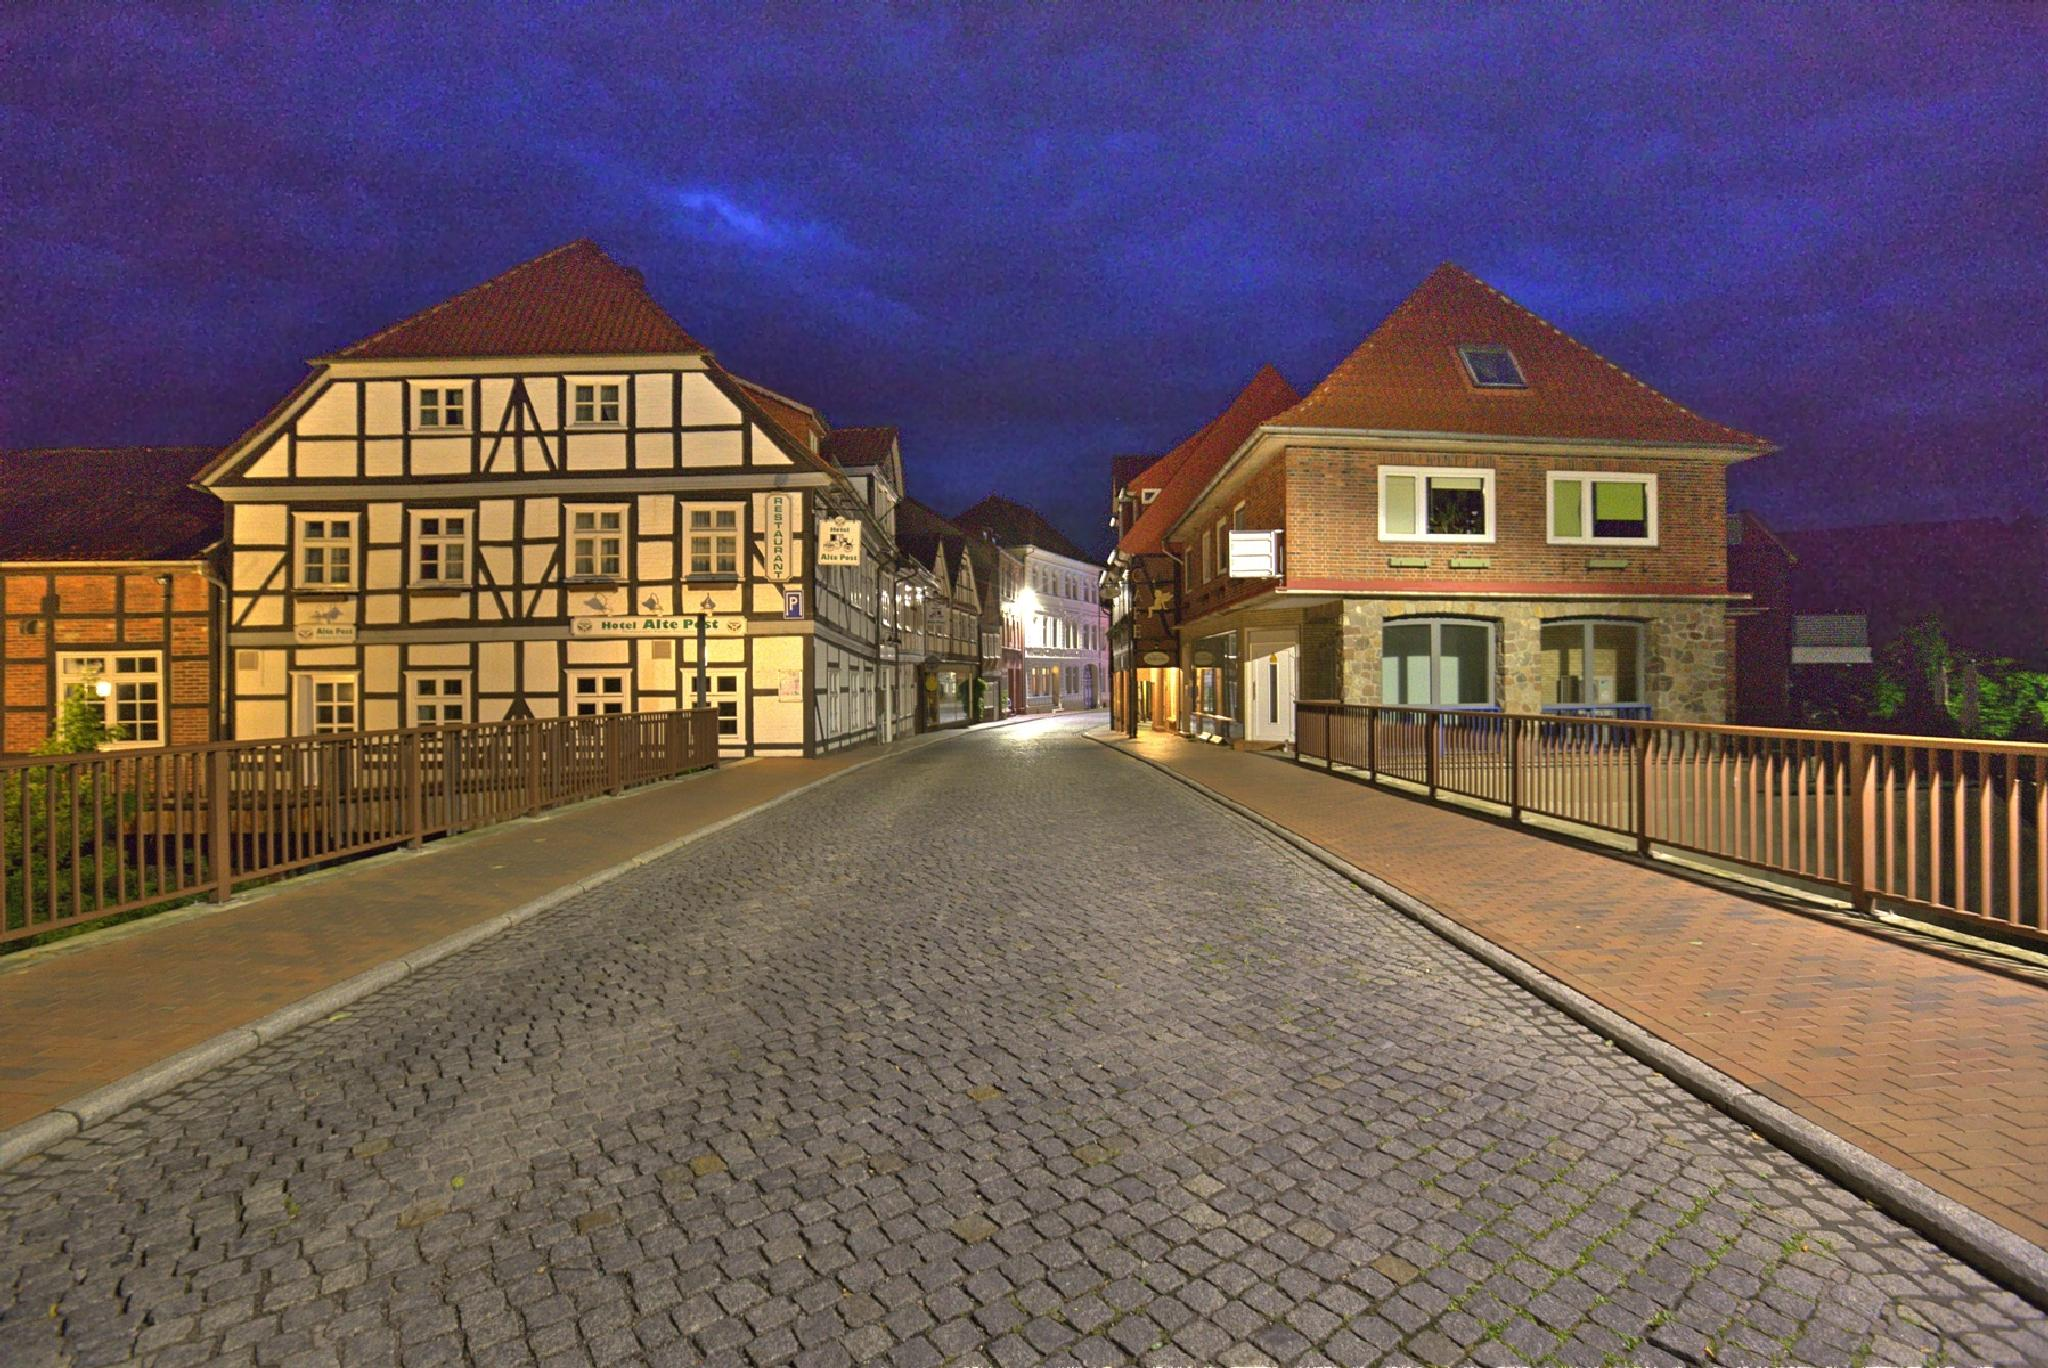 Dannenberg at night (freehand shot with ISO 20.000) by Maik Richter Photography